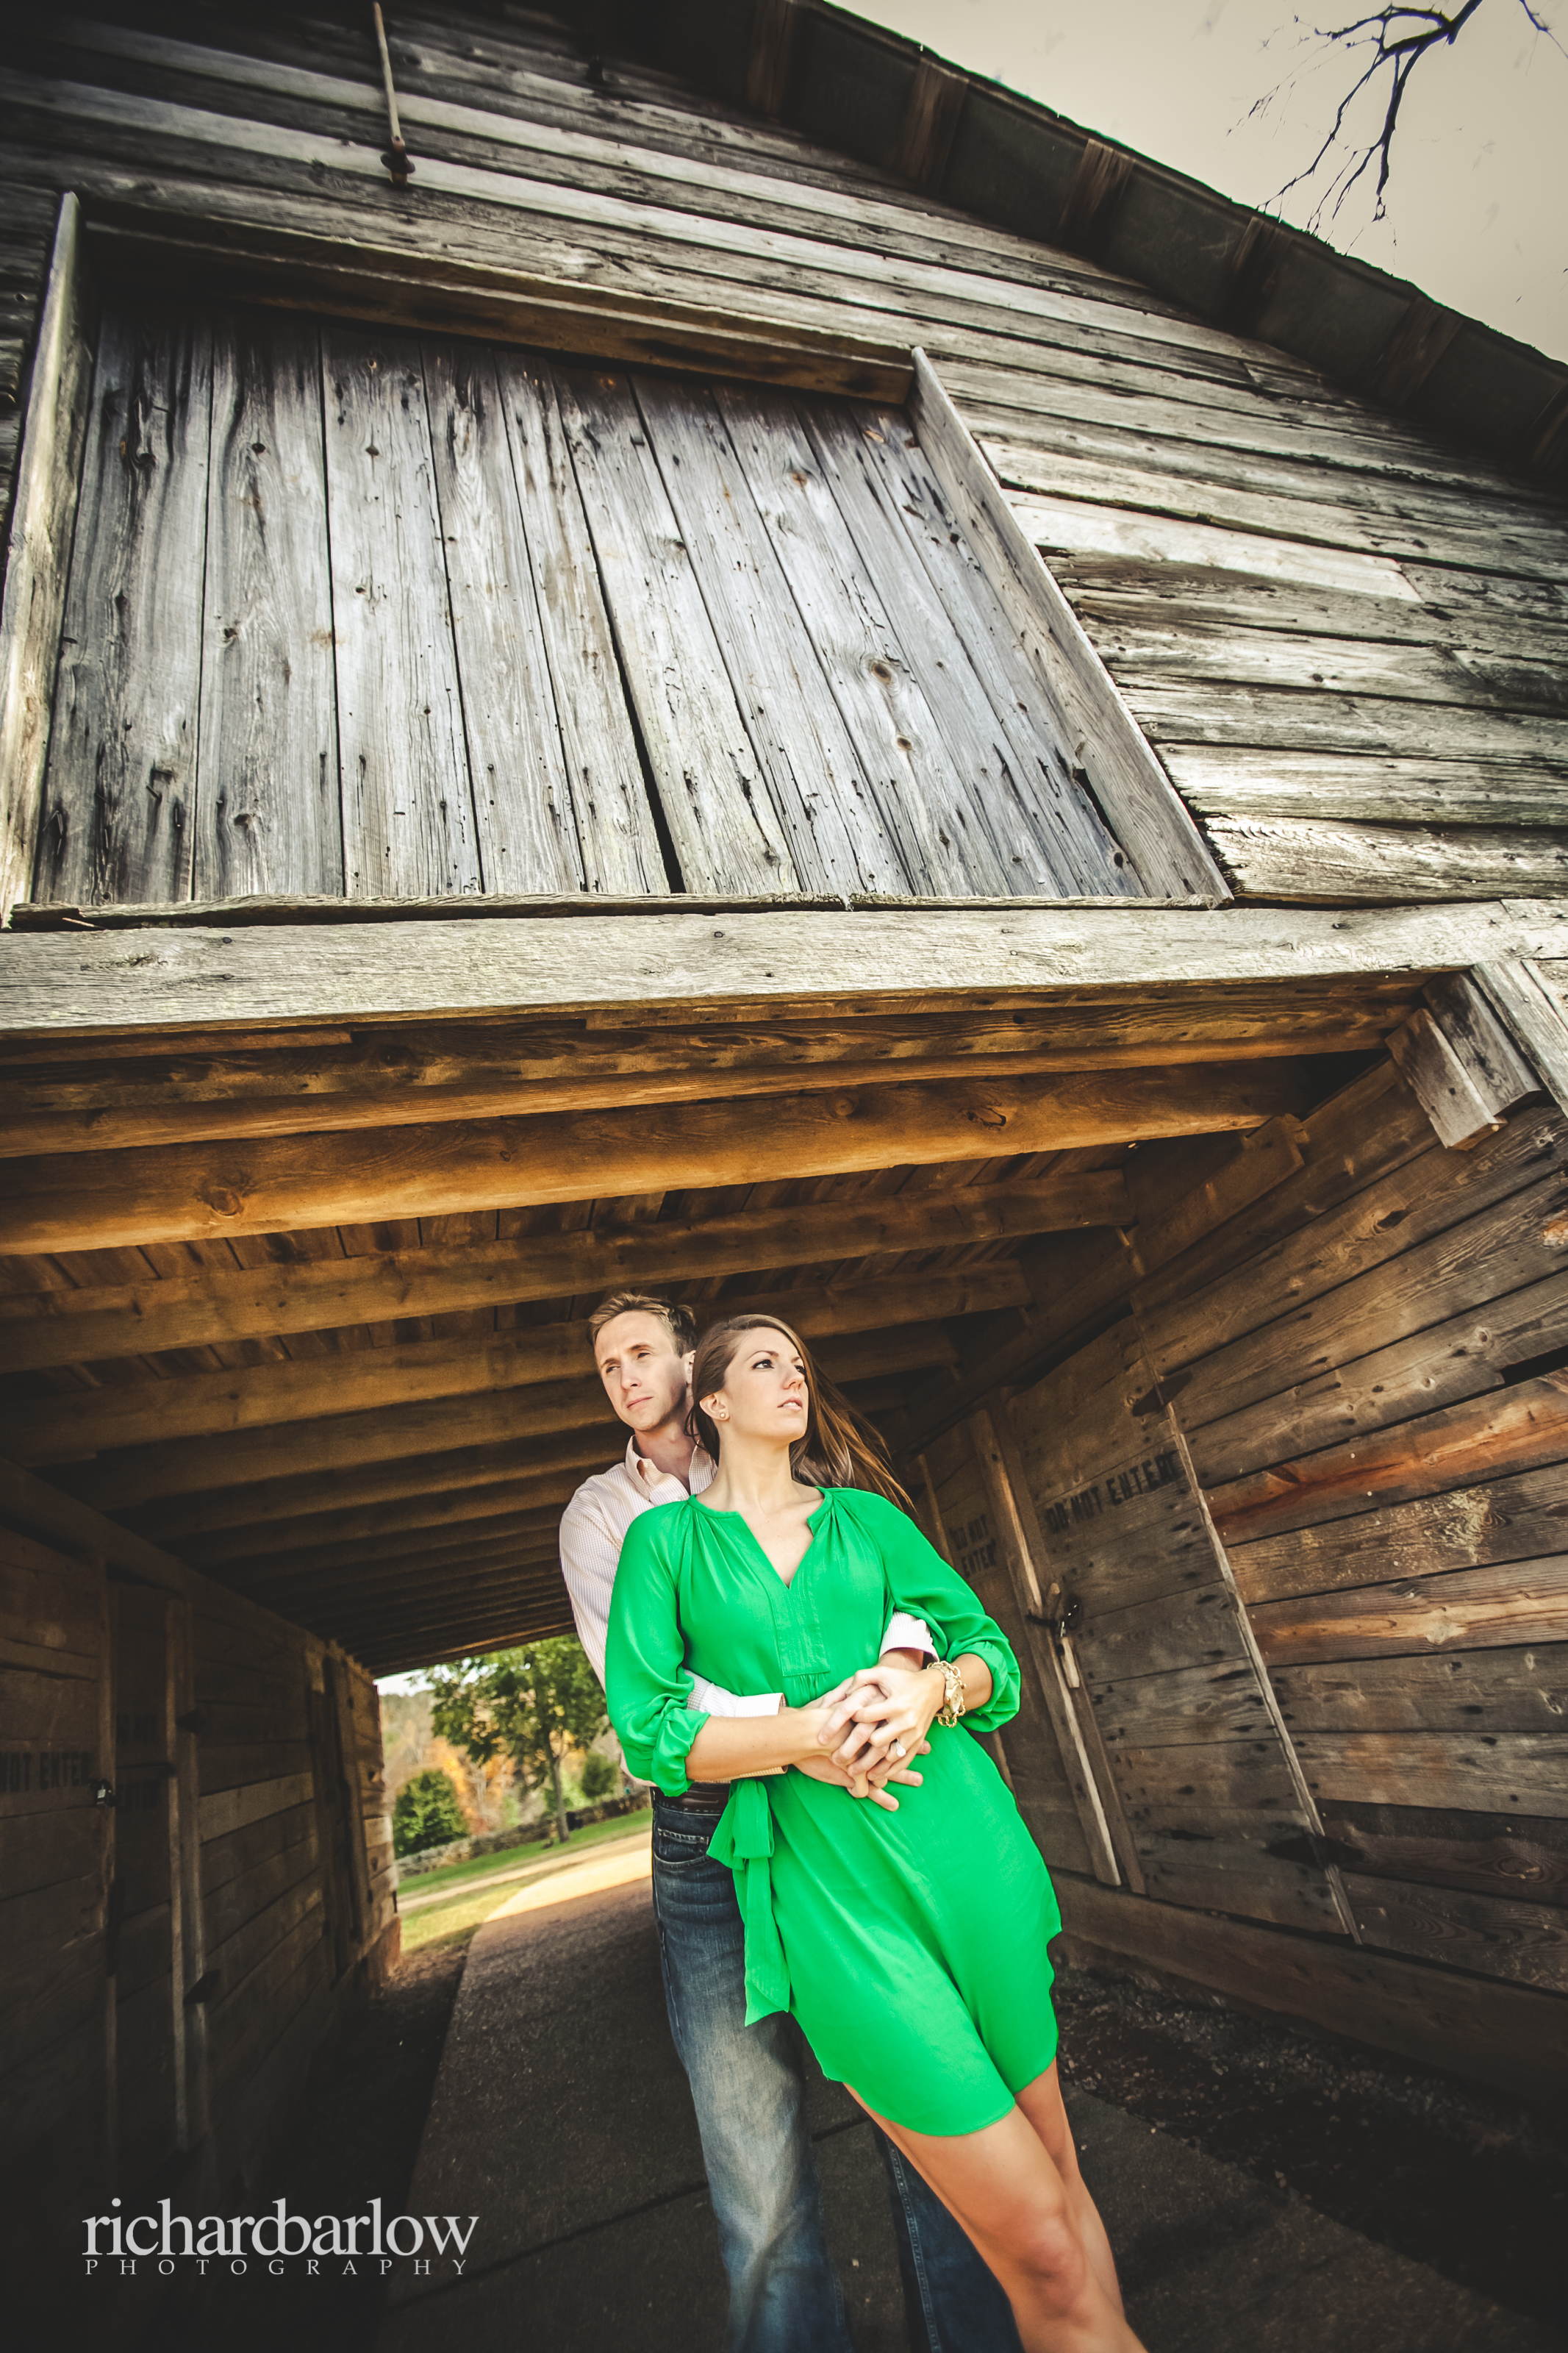 richard barlow photography - Graham and Lauren Engagement Session Wake Forest-14.jpg